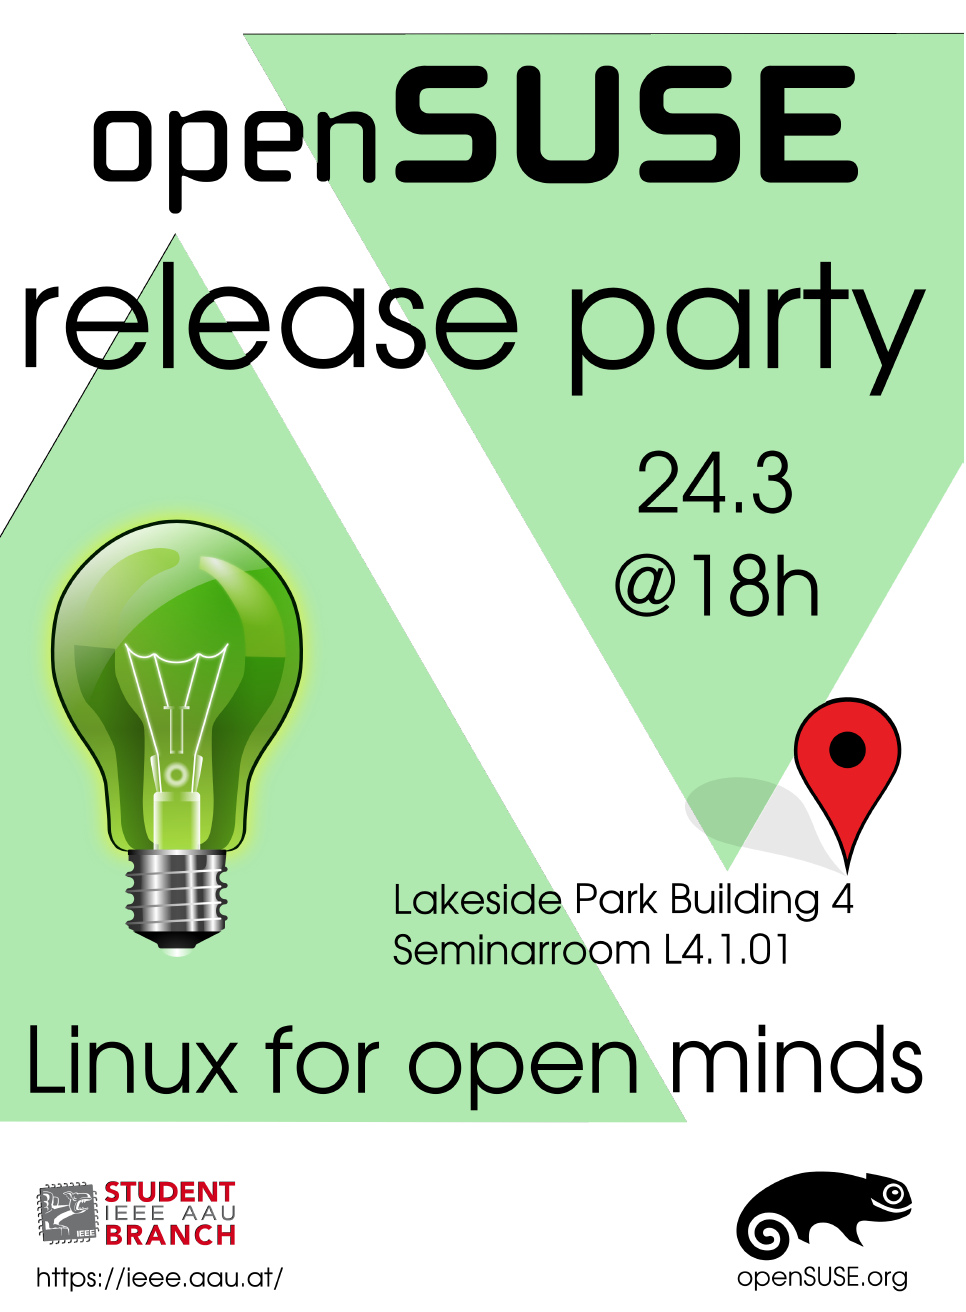 openSUSE Release Party - Flyer